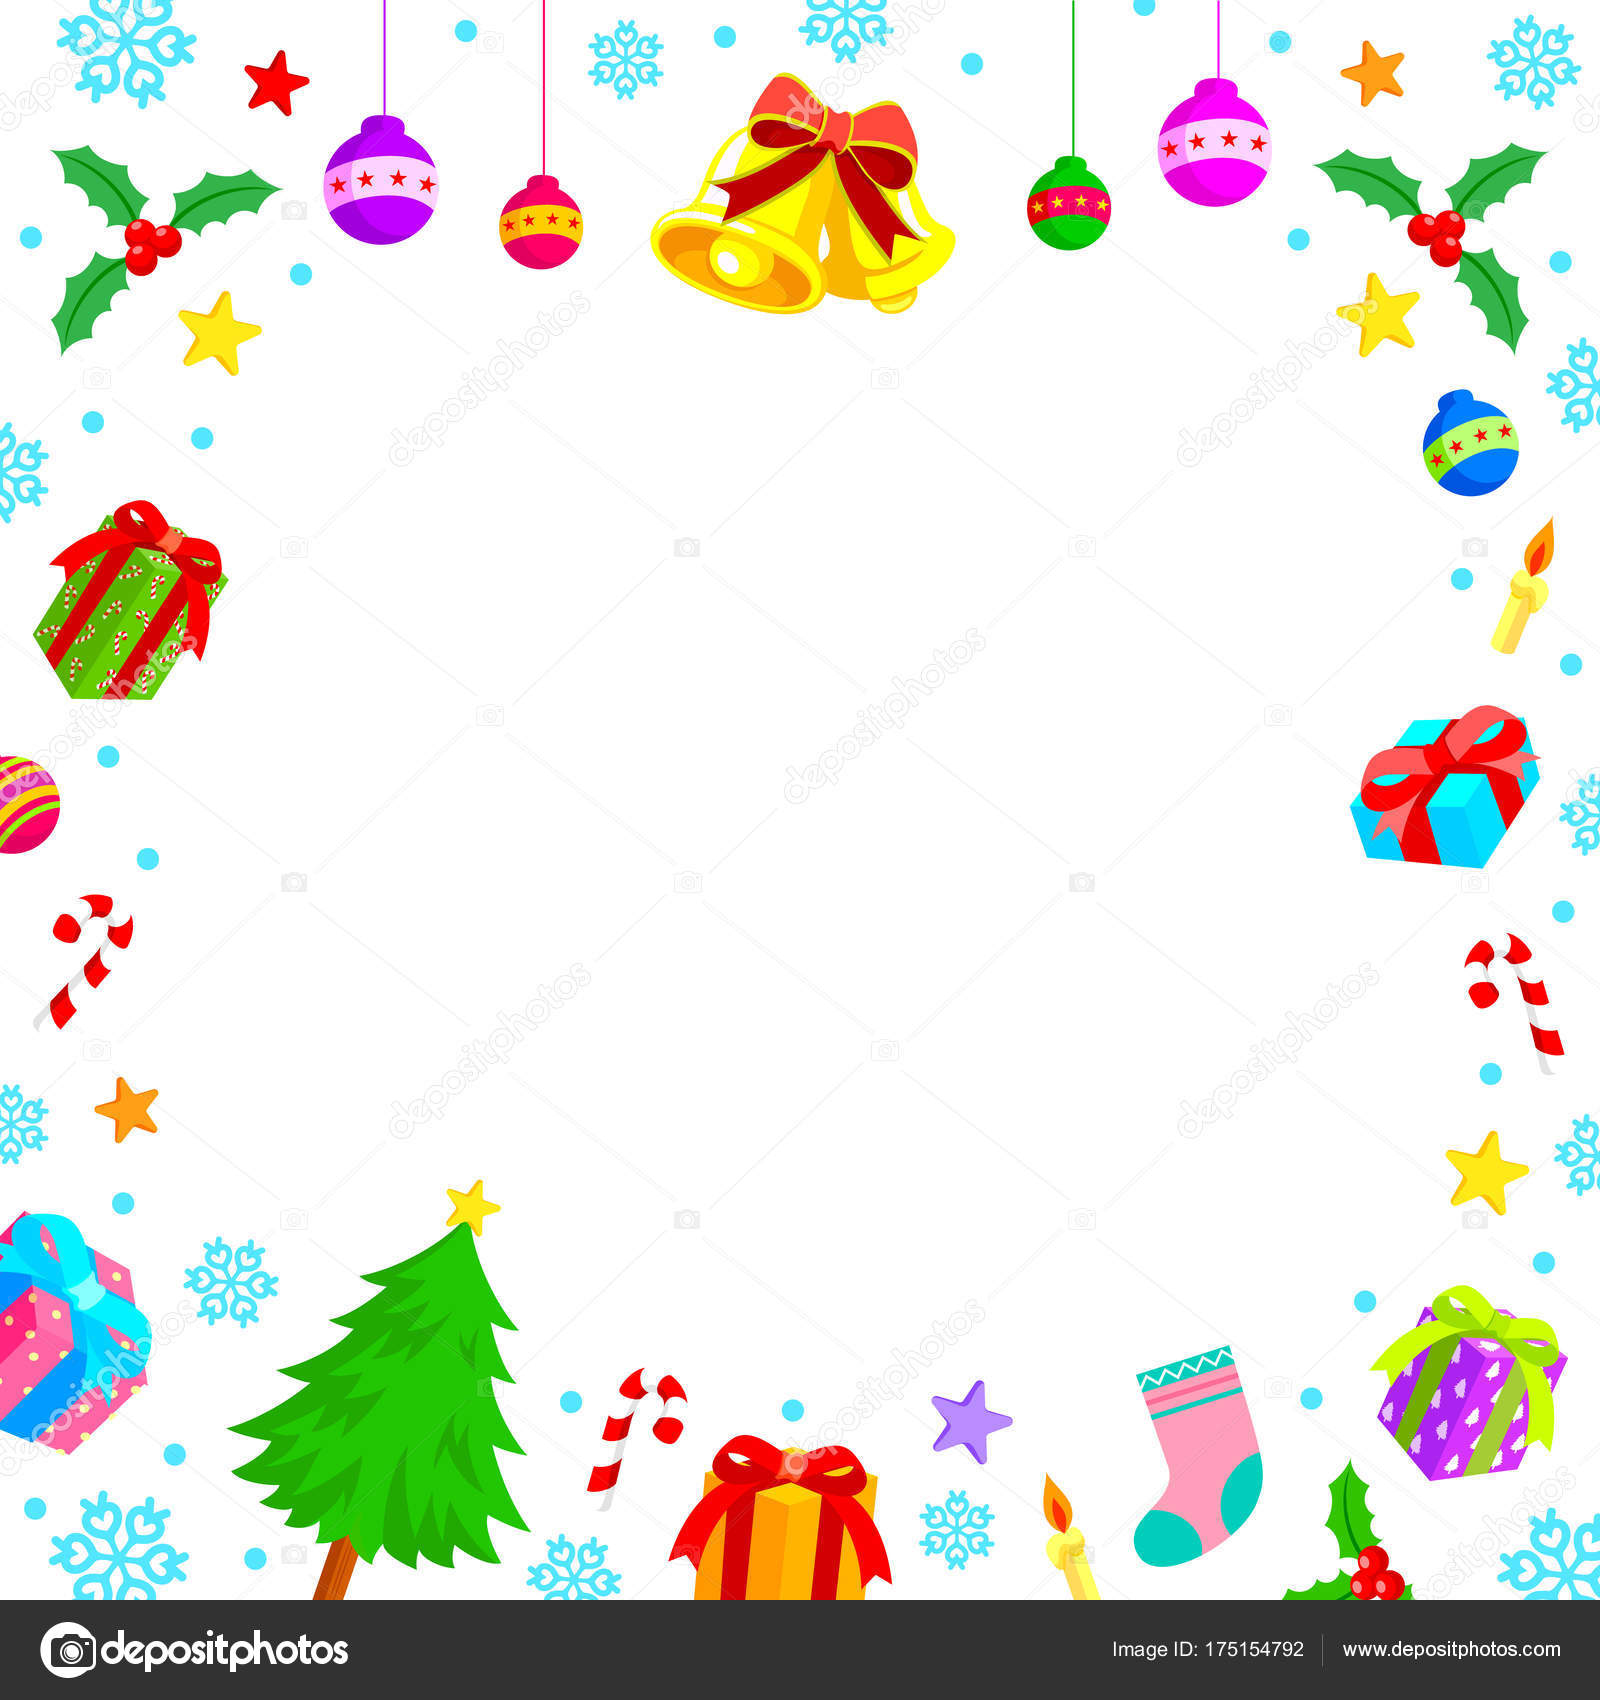 christmas characters frame christmas elements merry christmas happy new year stock vector